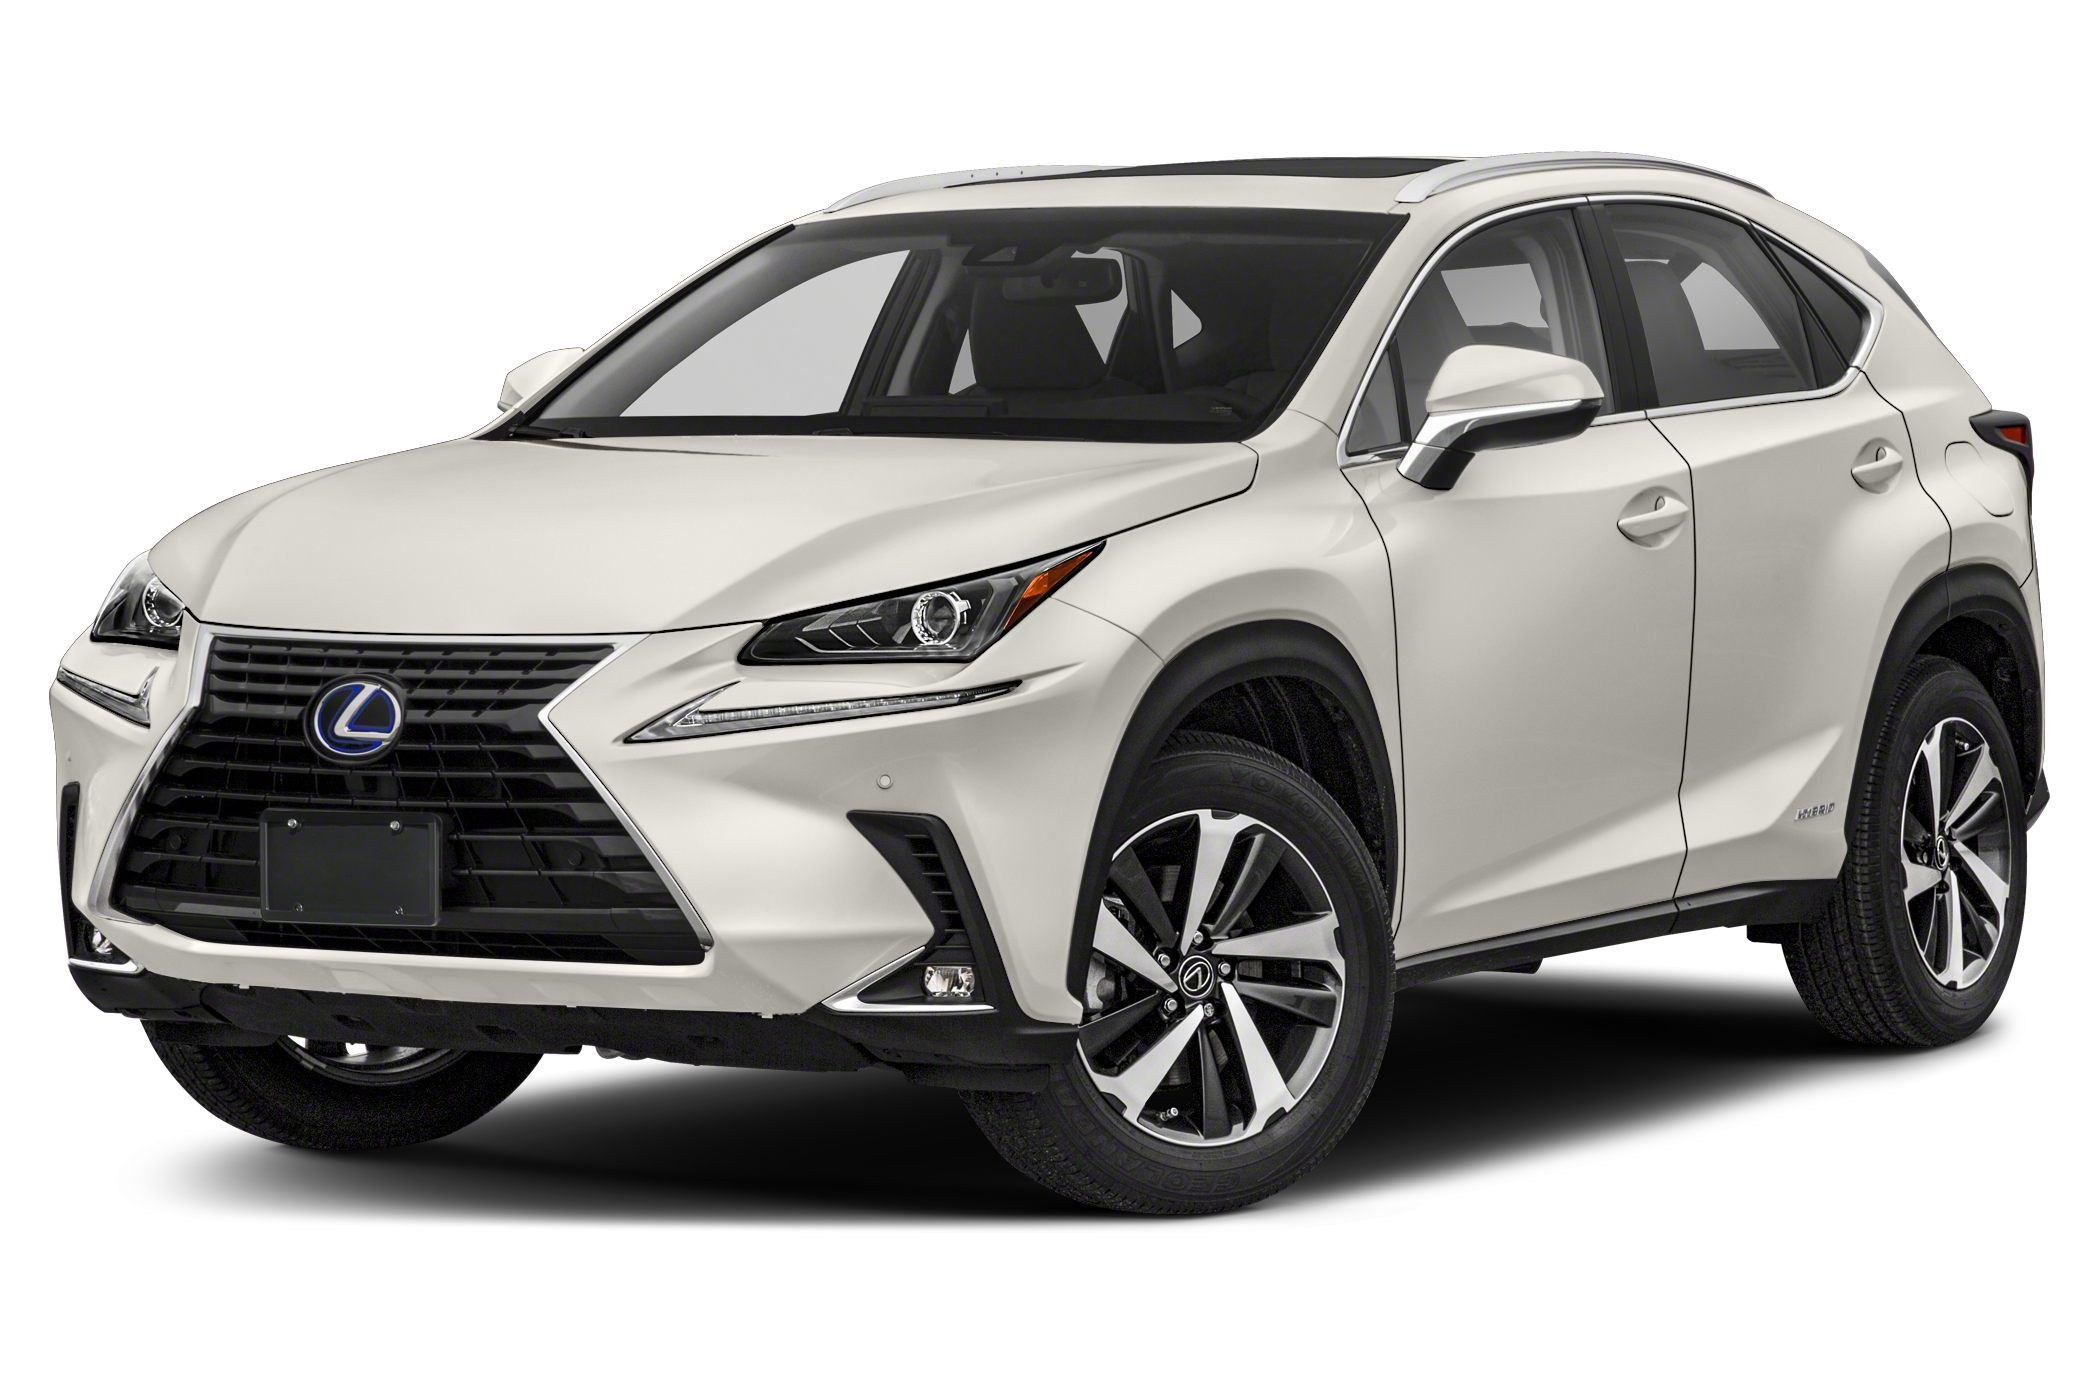 Lexus Nx Hybrid 2020 Review and Release Date in 2020